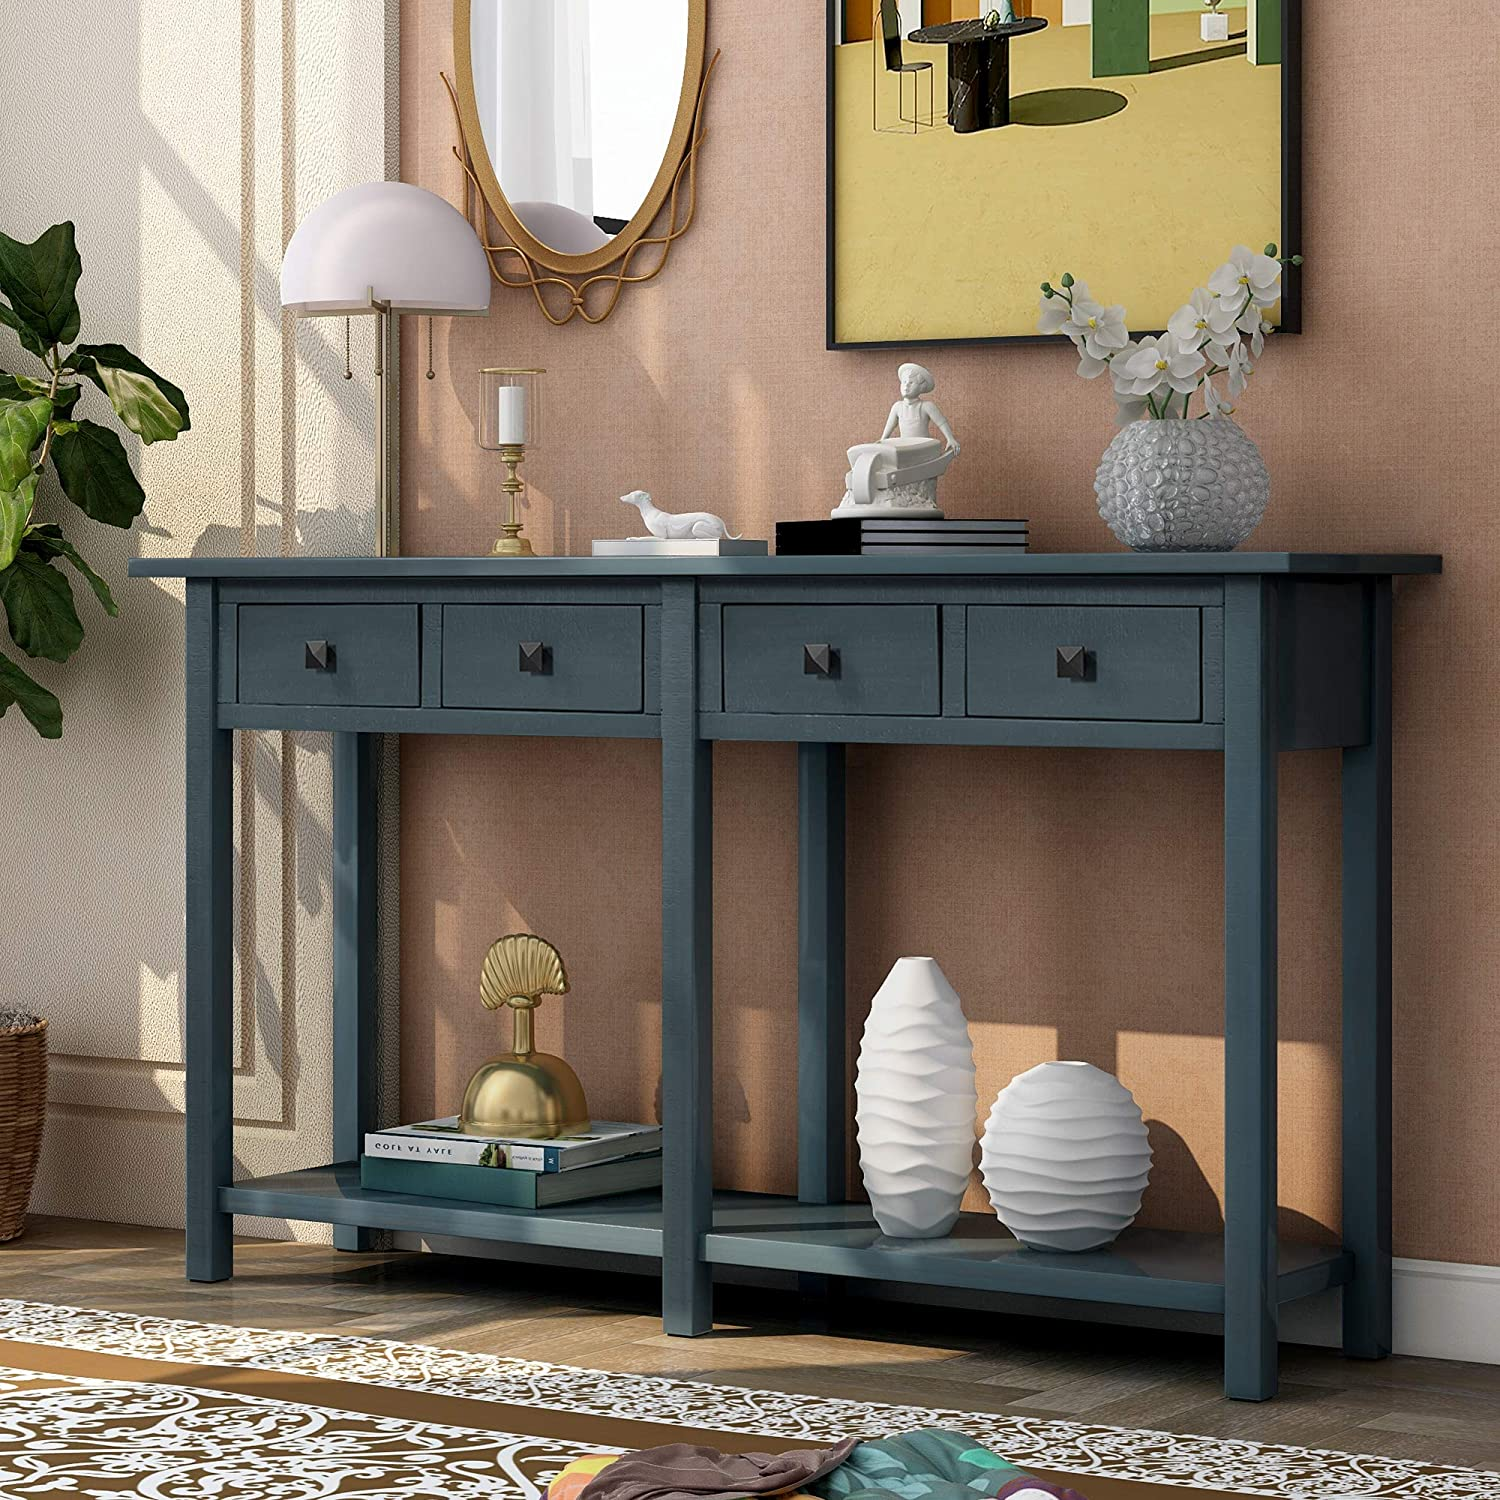 Merax Narrow Console Sofa Table Sideboard Max 64% OFF Inexpensive with and Drawers Long